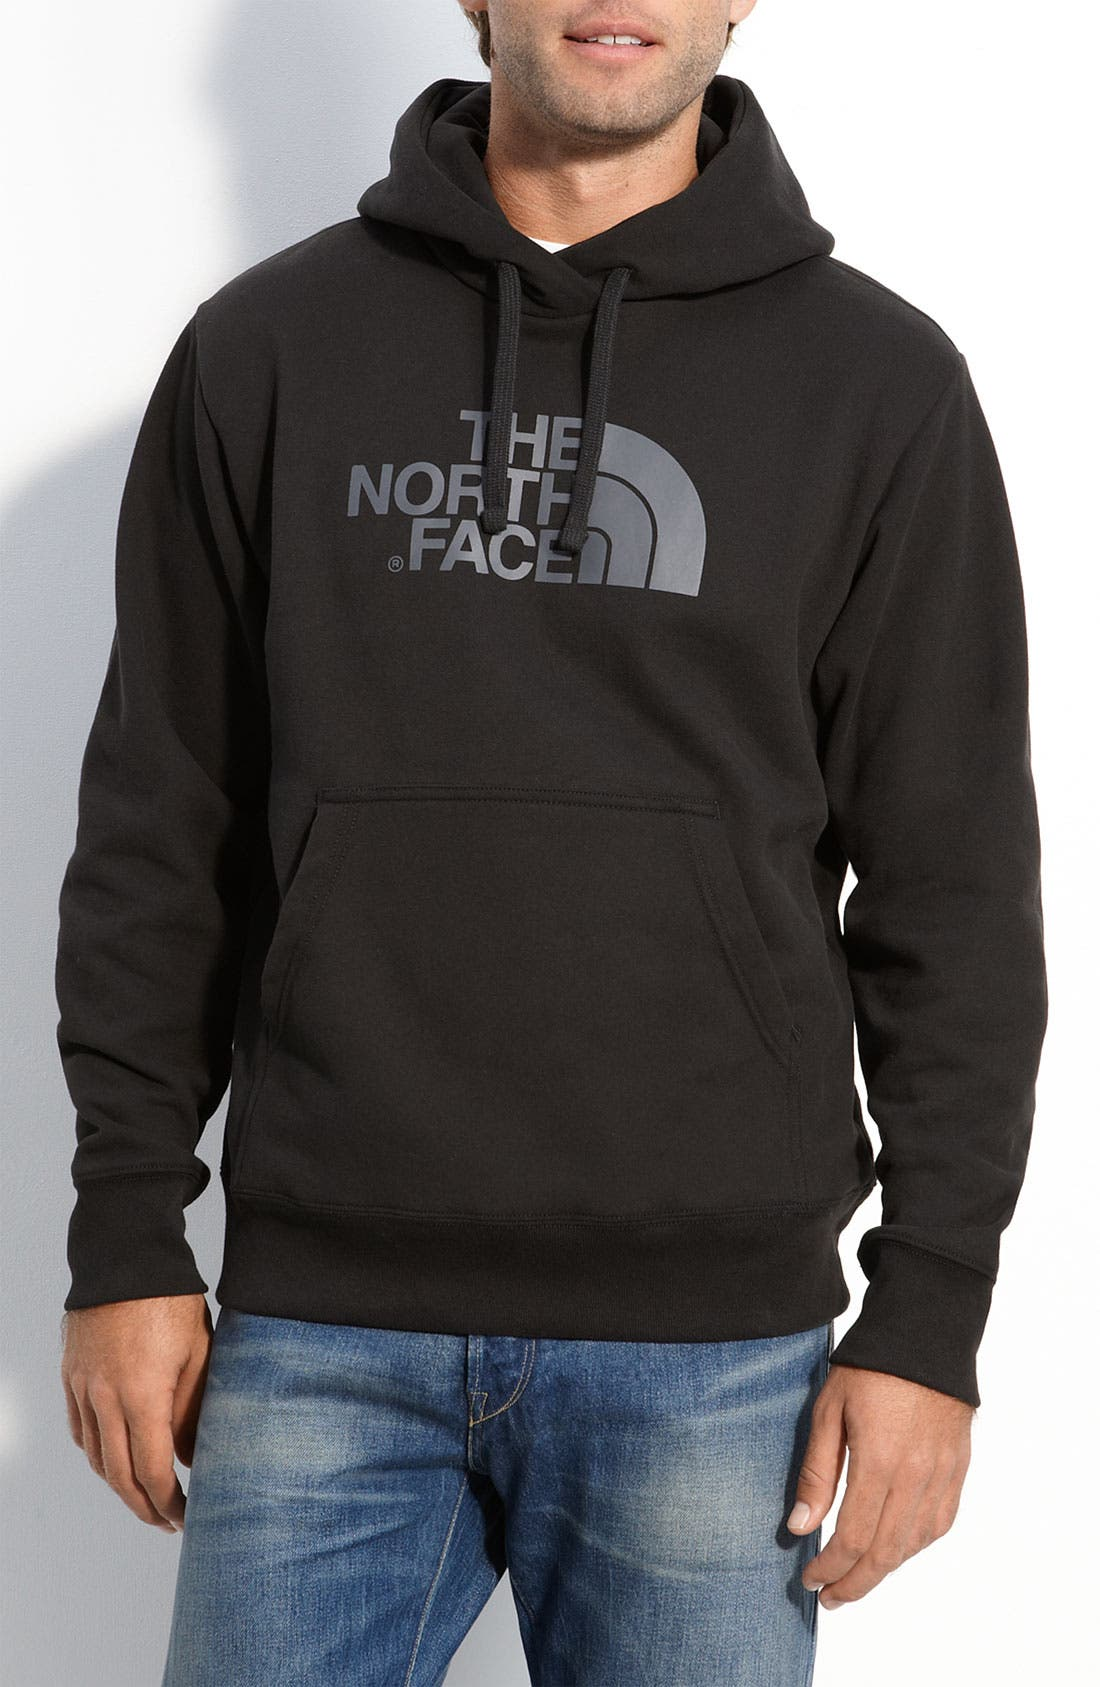 Alternate Image 1 Selected - The North Face 'Half Dome' Hooded Sweatshirt